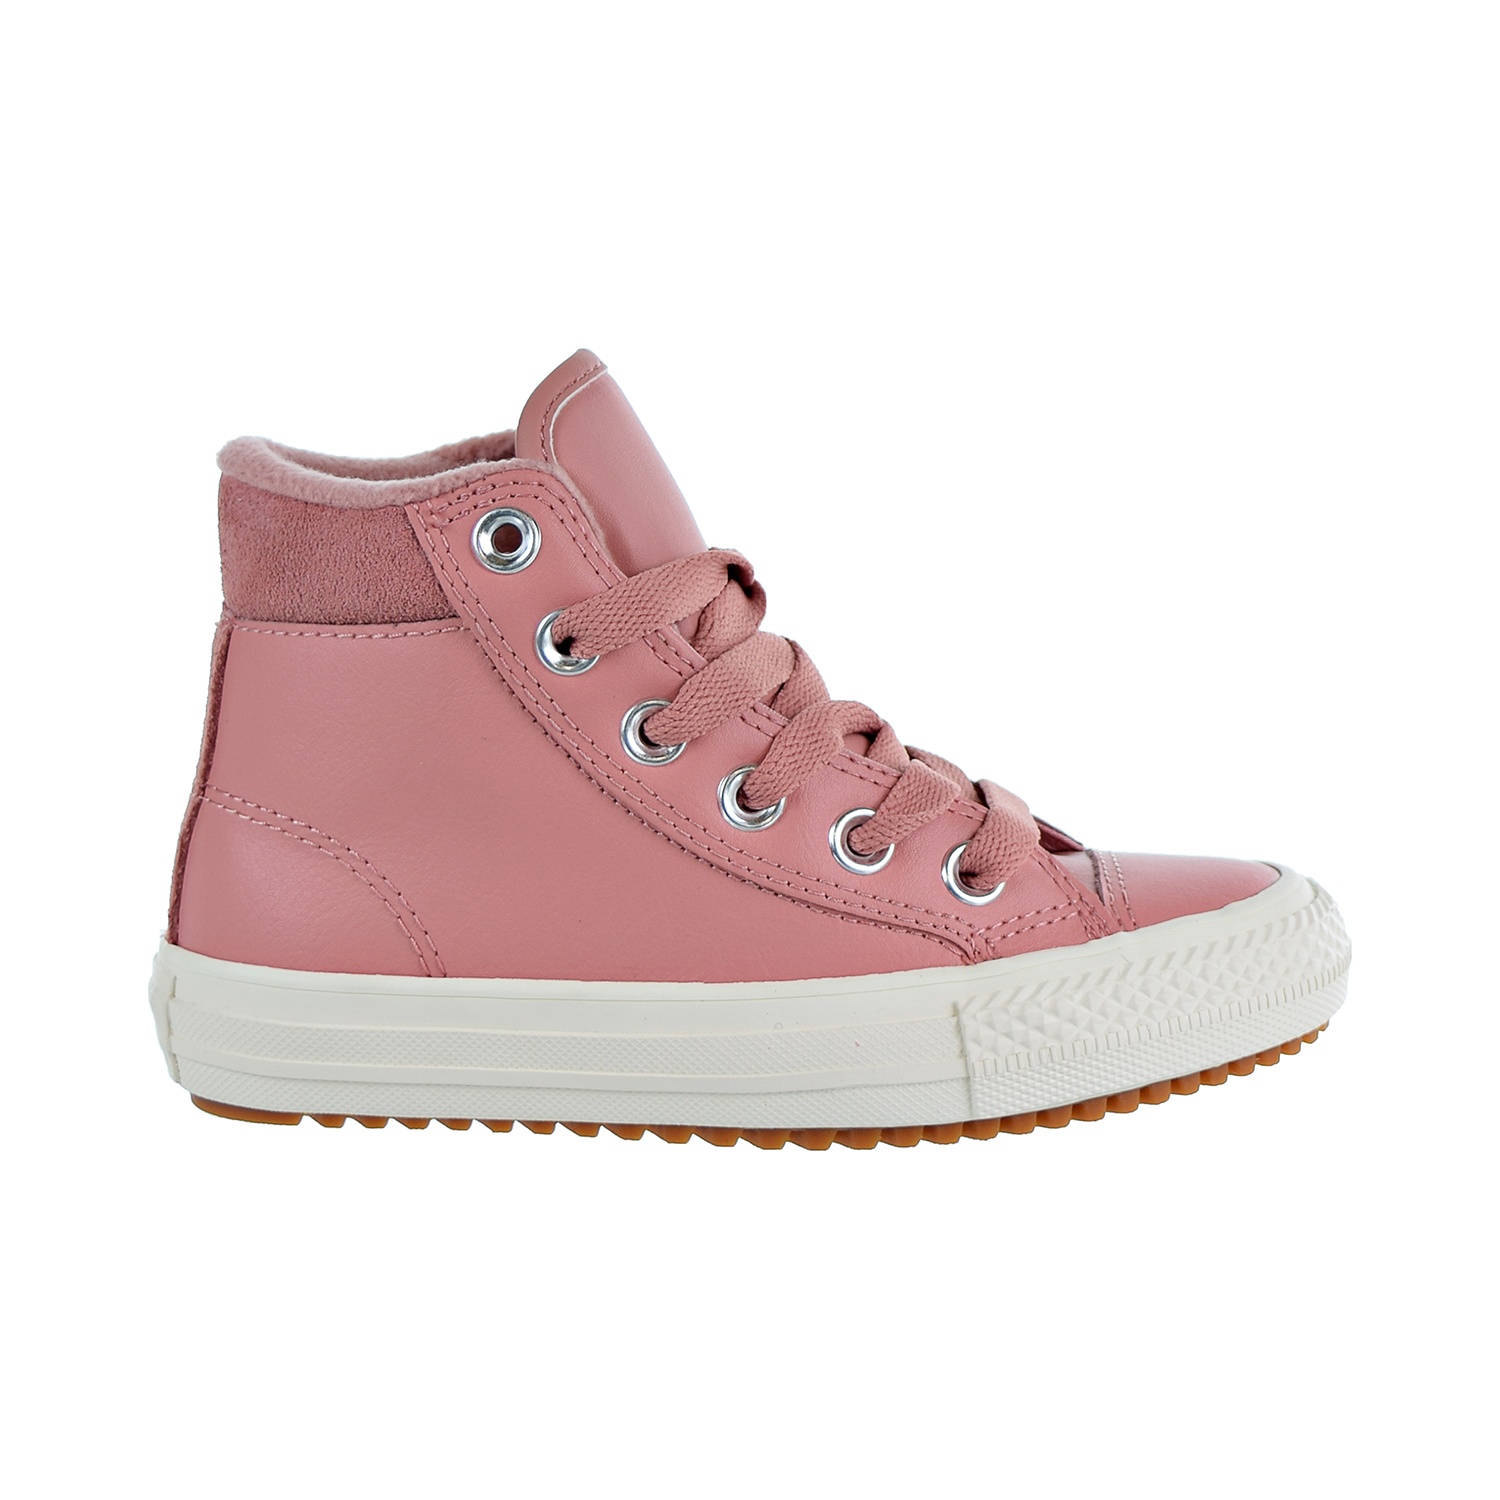 fc0390cec490a6 Details about Converse Chuck Taylor All Star PC Boot Hi Kids Shoes Pink Burnt  Caramel 661905c